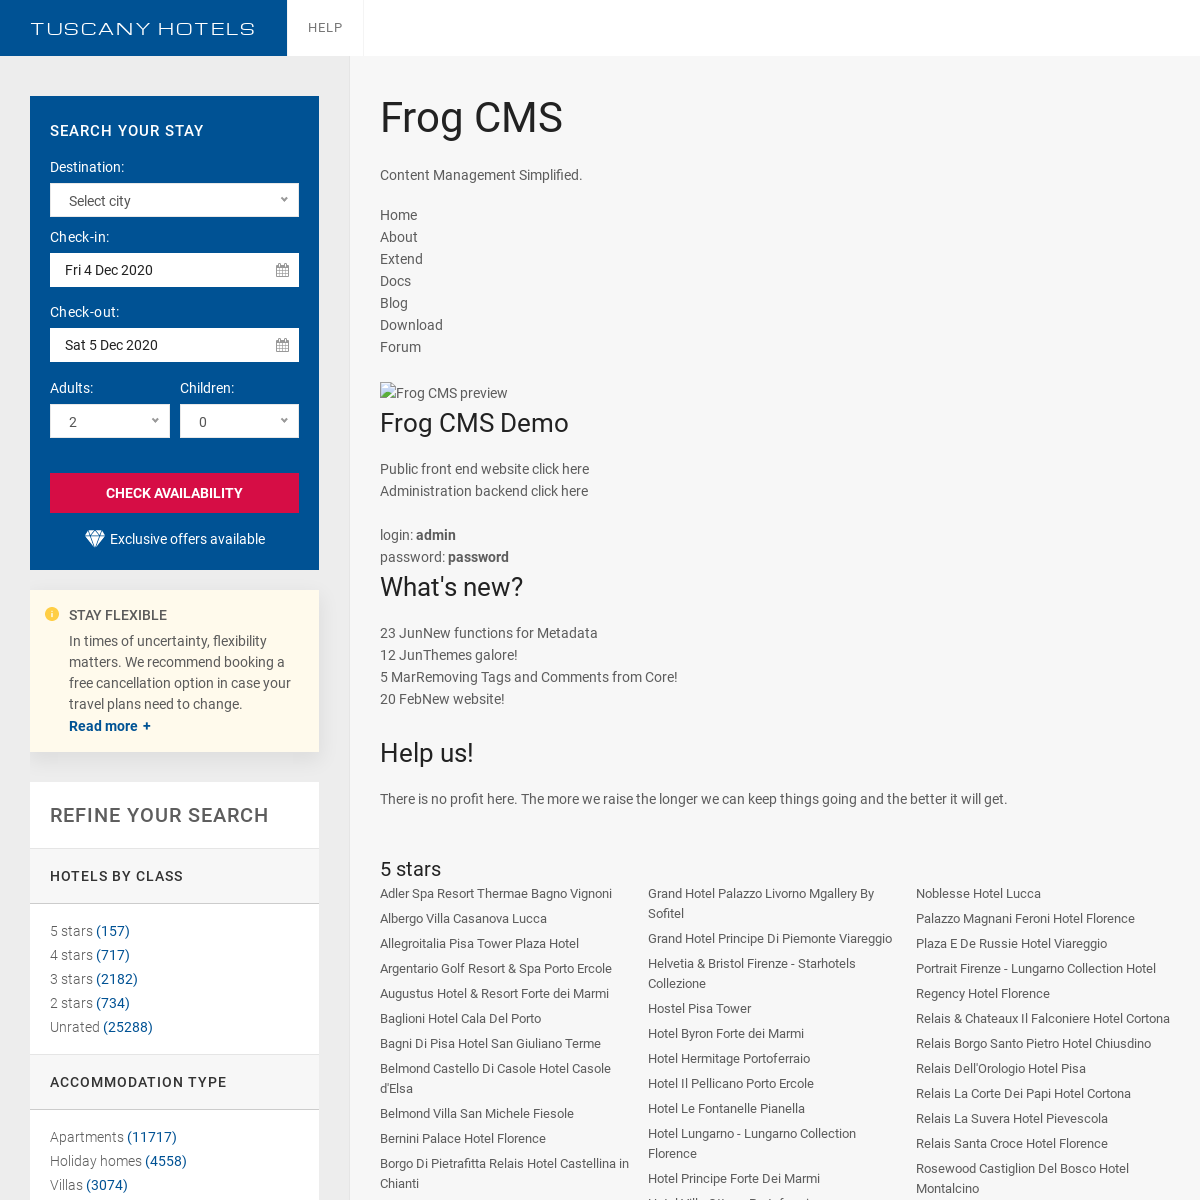 Frog CMS - Content Management Simplified - Frog CMS